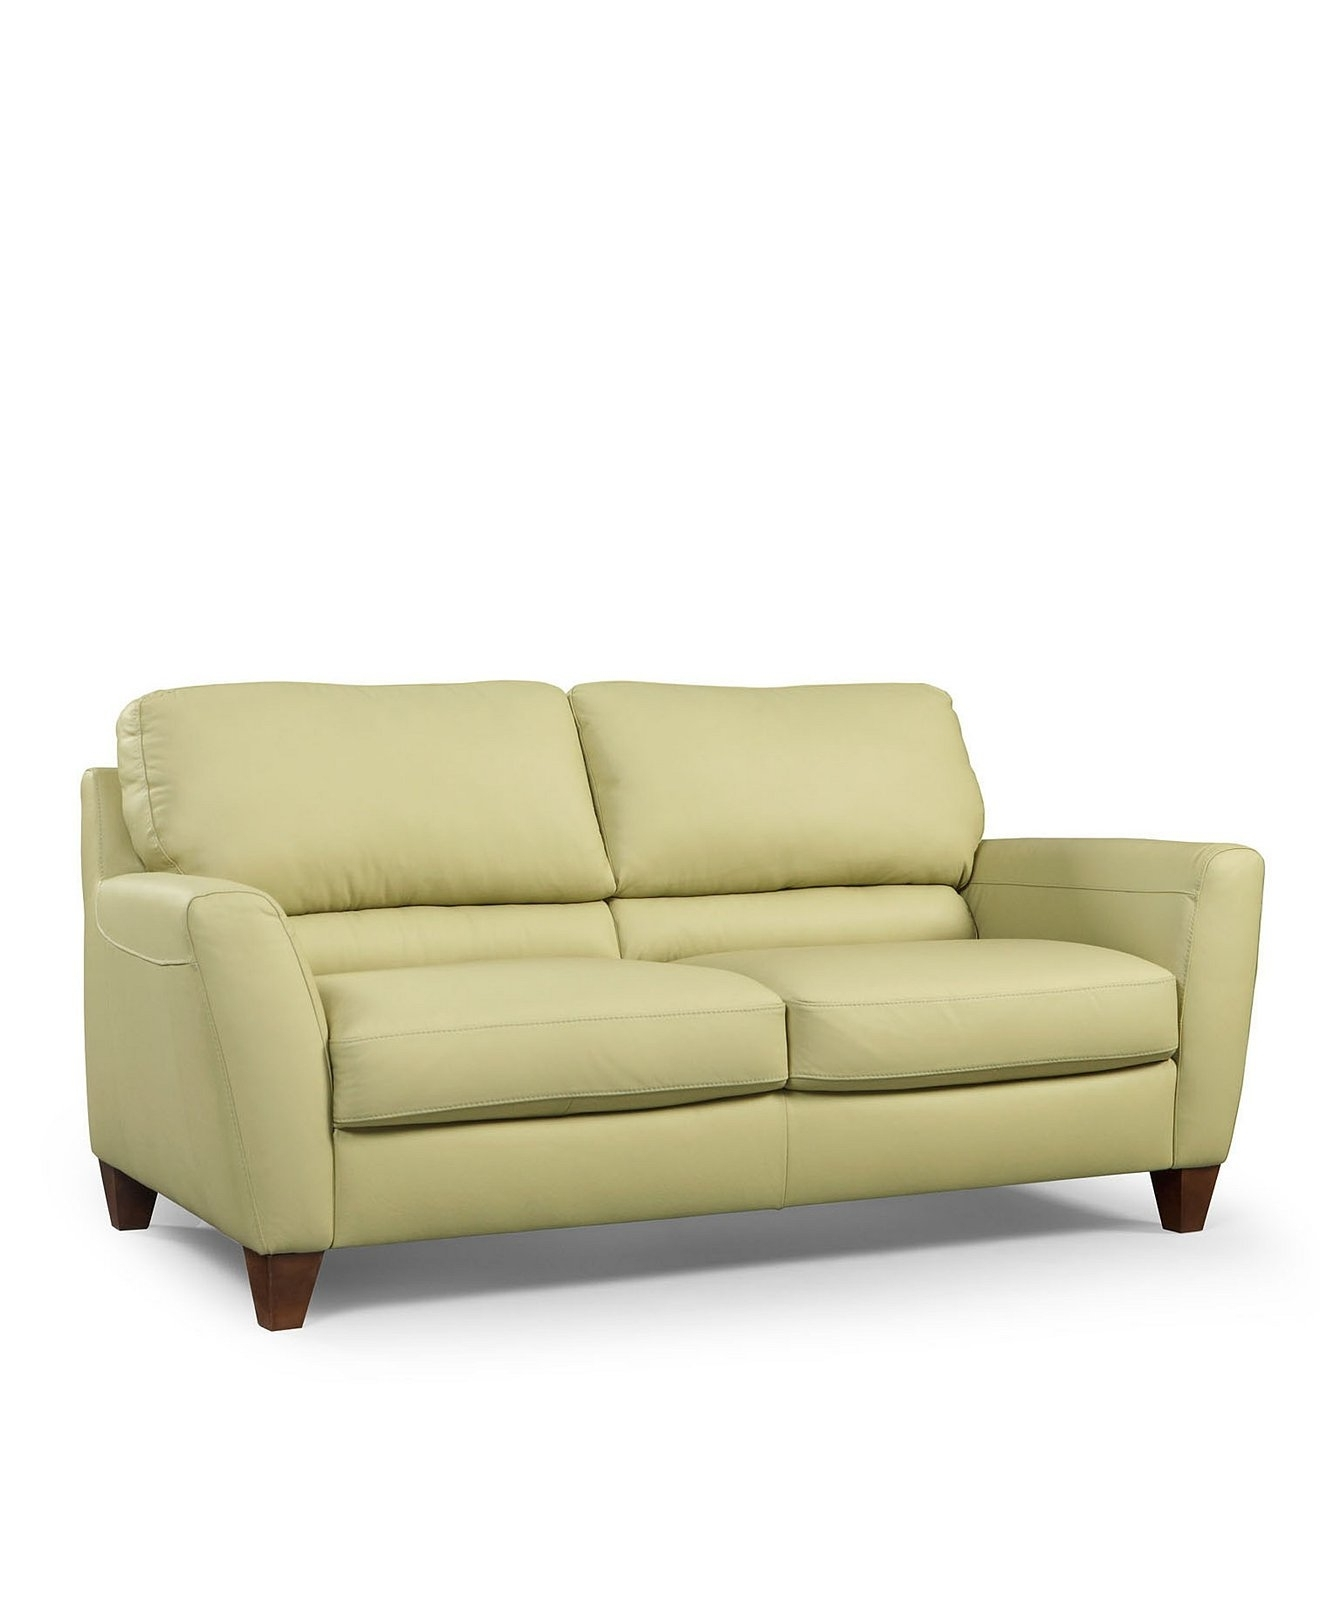 Furniture: Amalfi Sofa Lovely Macy Leather Sofa Set Macy Leather Within Latest Macys Leather Sofas (View 5 of 20)